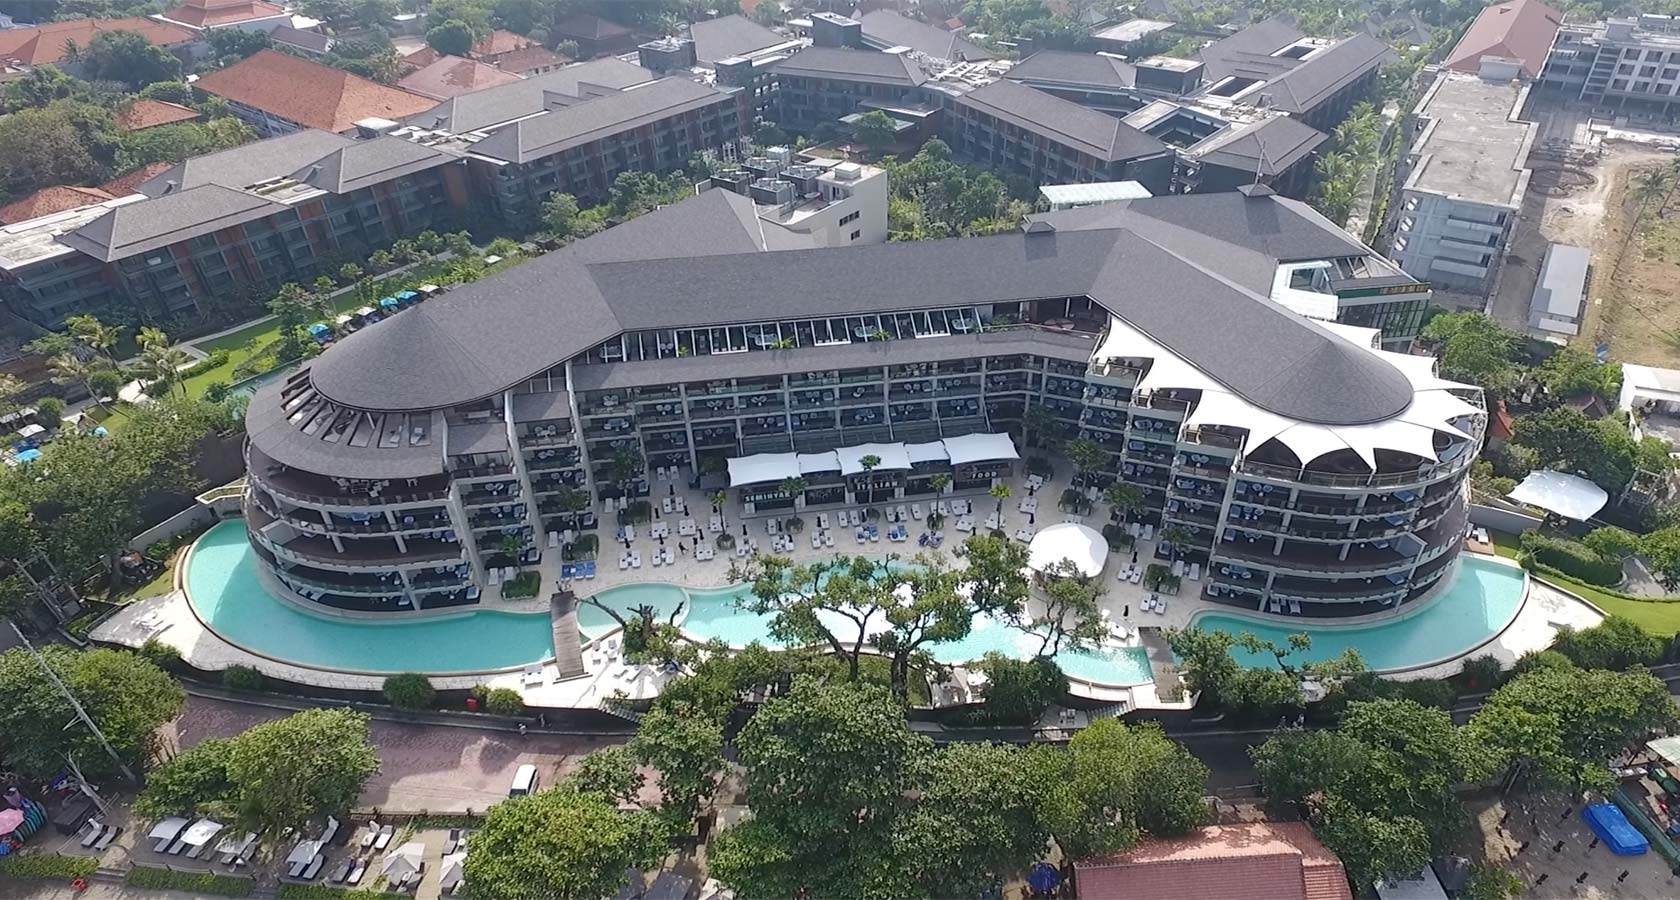 DOUBLE SIX LUXURY HOTEL SEMINYAK aerial view